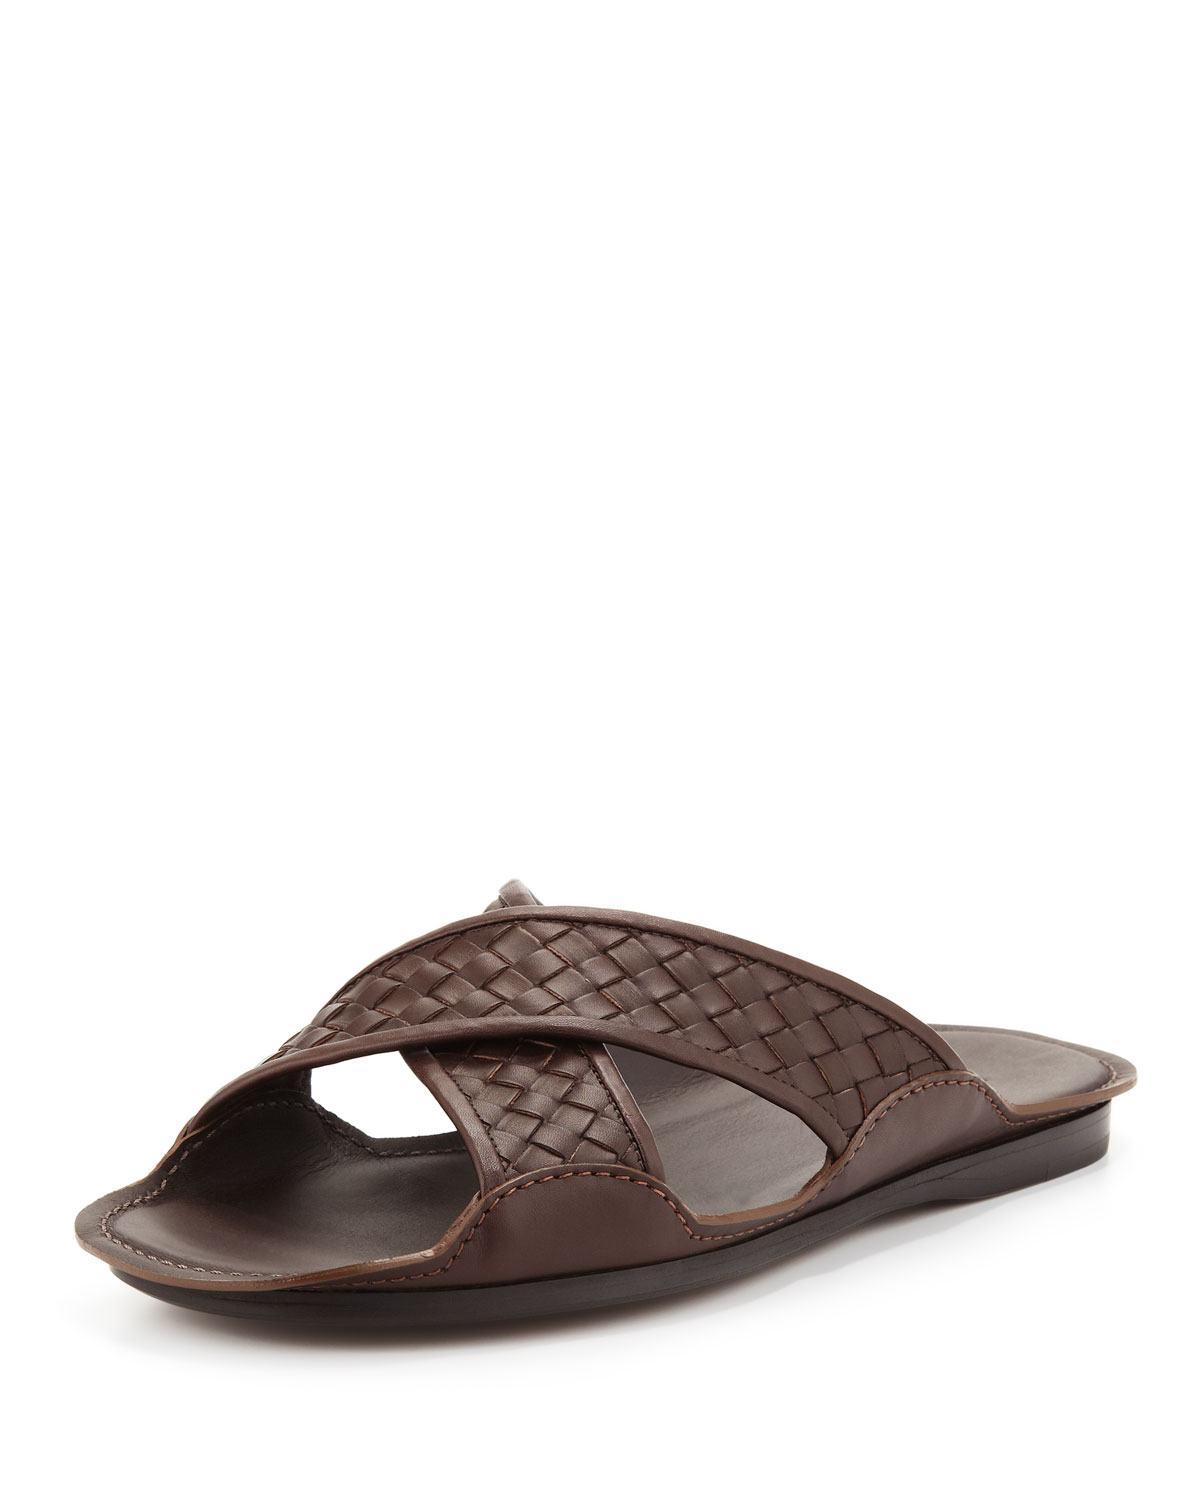 Bottega Veneta Cross-Woven Sandal, Brown